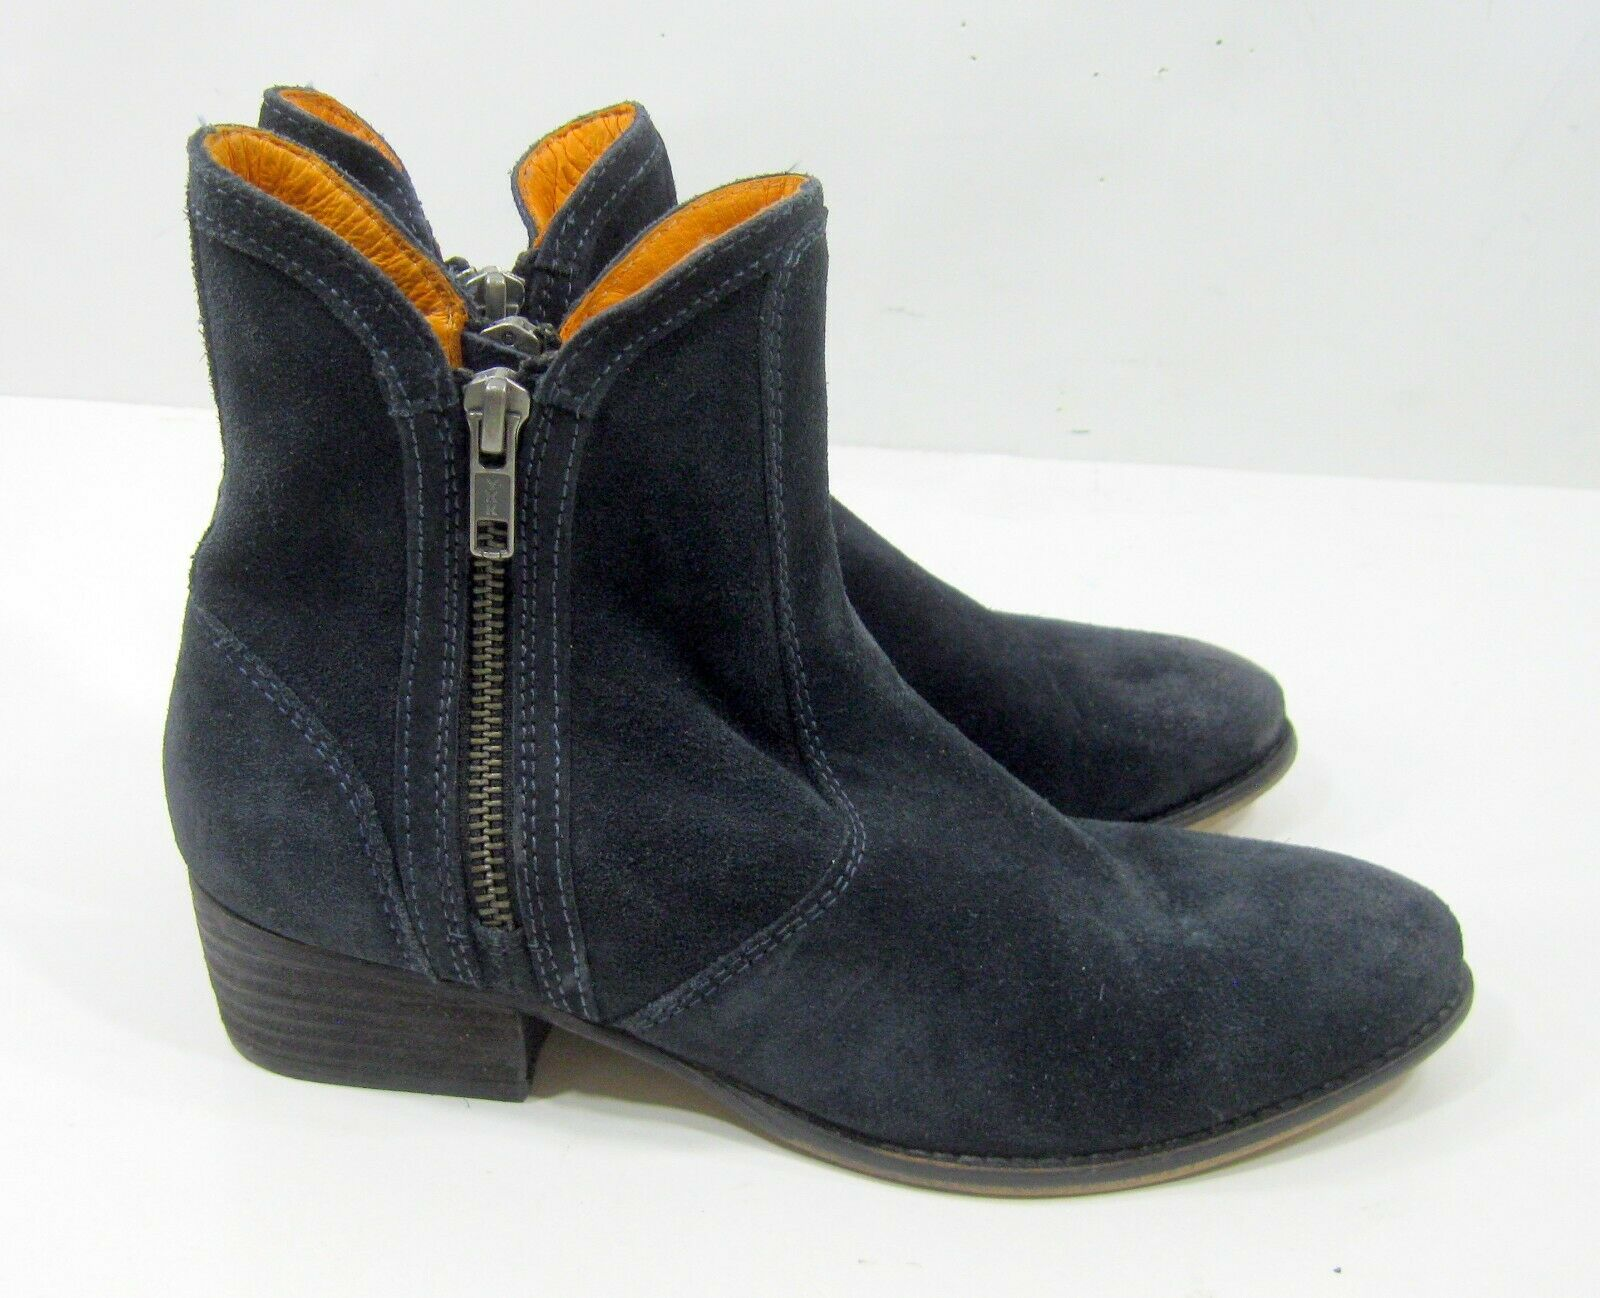 seychelles shoes NAVY suede ankle boot 2